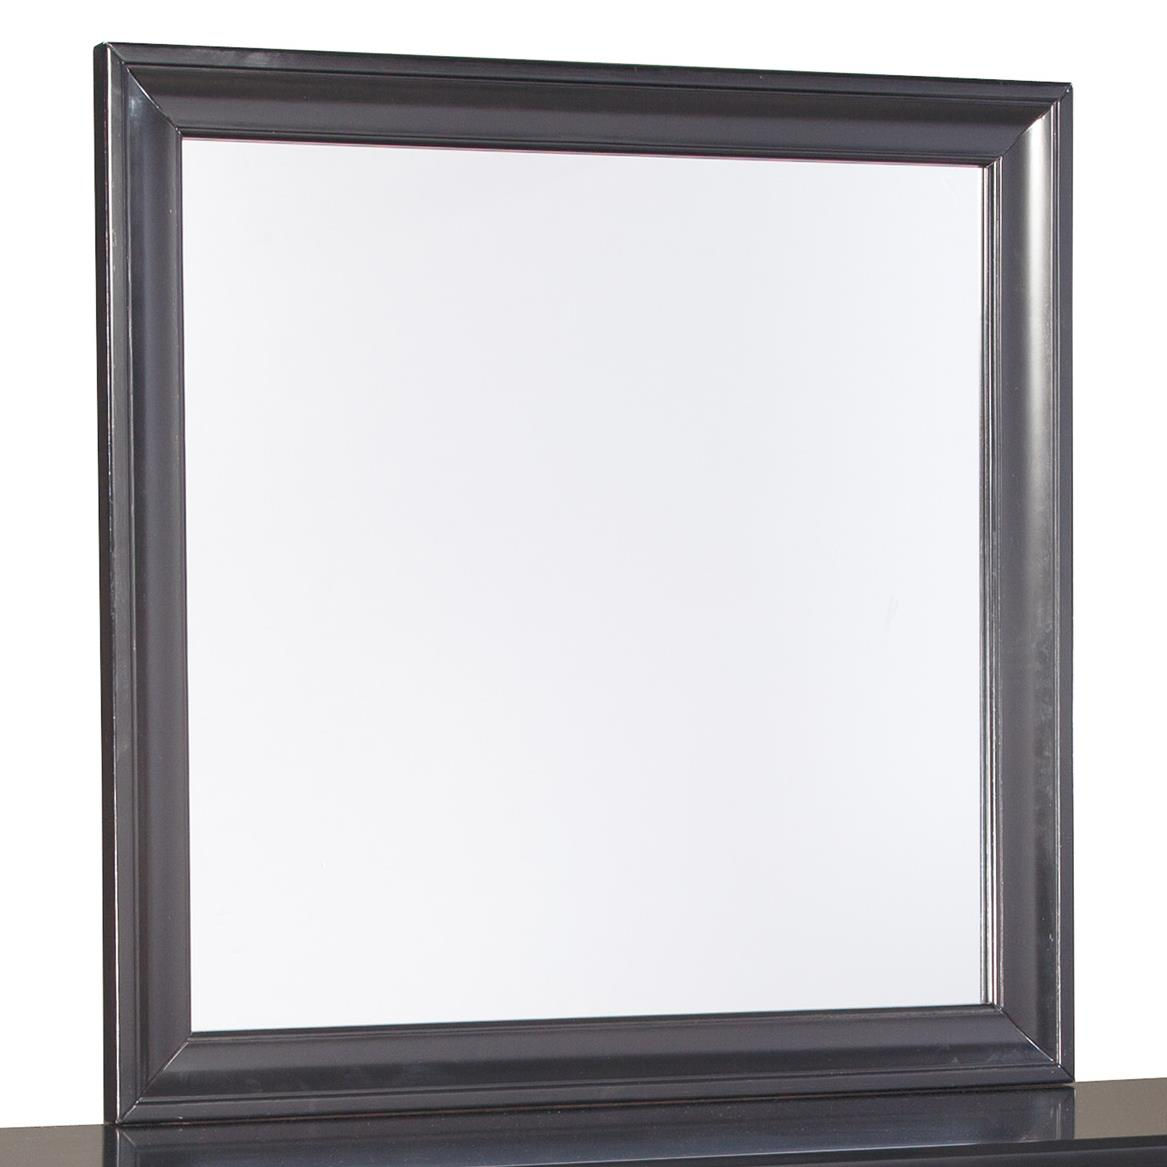 Signature Design by Ashley Braflin Bedroom Mirror - Item Number: B591-36